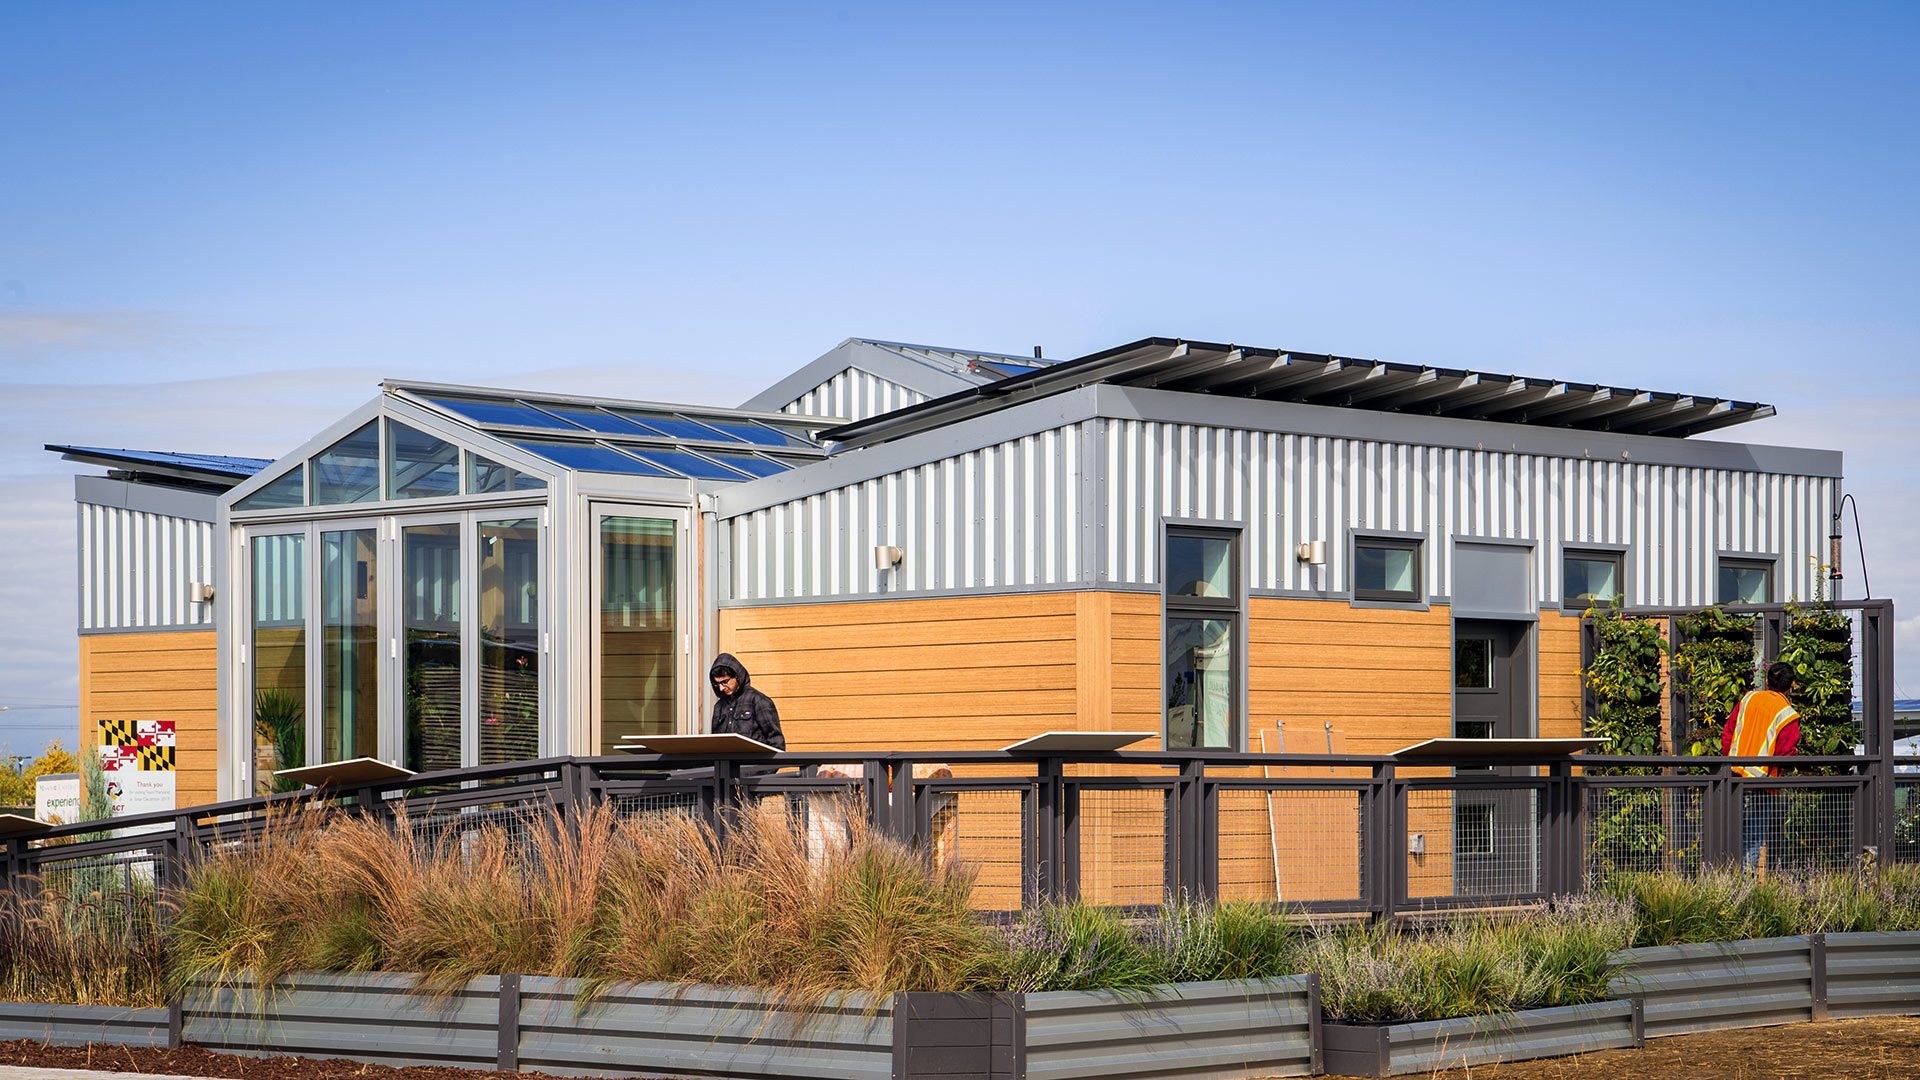 UMD Solar Decathlon Team Earns First Place in the U.S., Second Place in the World